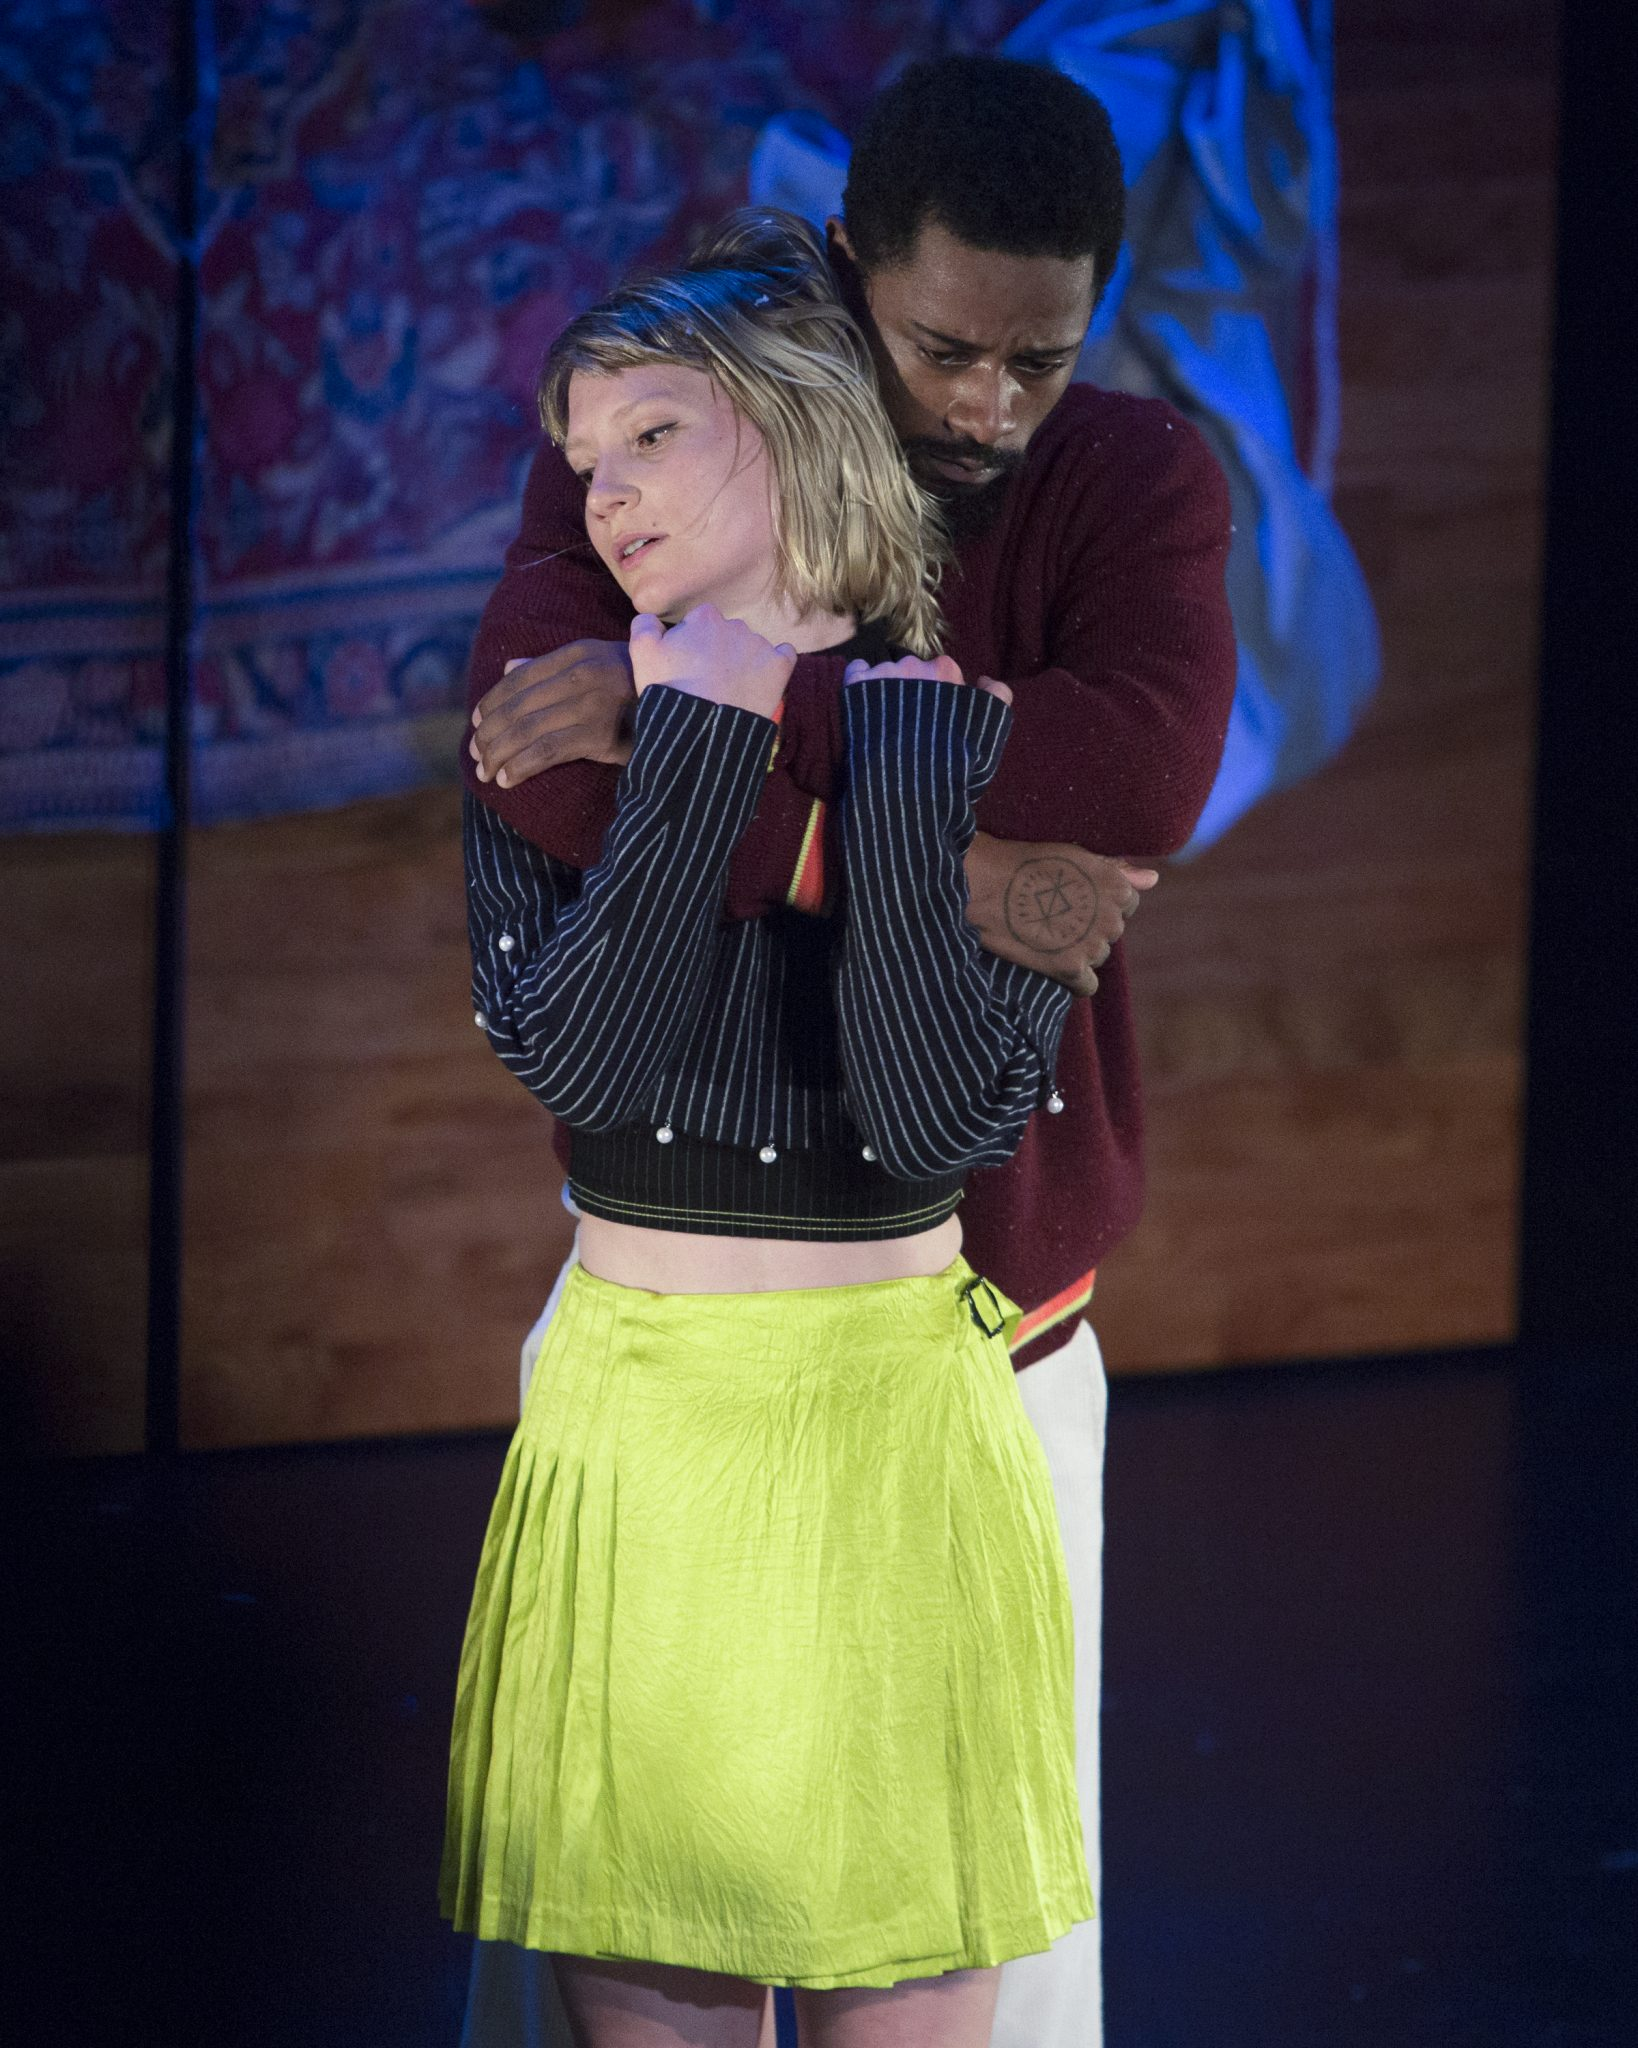 """Opening Ceremony and American Express Platinum present """"Changers"""", A Dance Story, Written and Directed by Spike Jones, Starring Mia Wasikowska and Lakeith Stanfield. La Mama, Sunday, September 10, 2017. Credit Photo: Erin Baiano"""